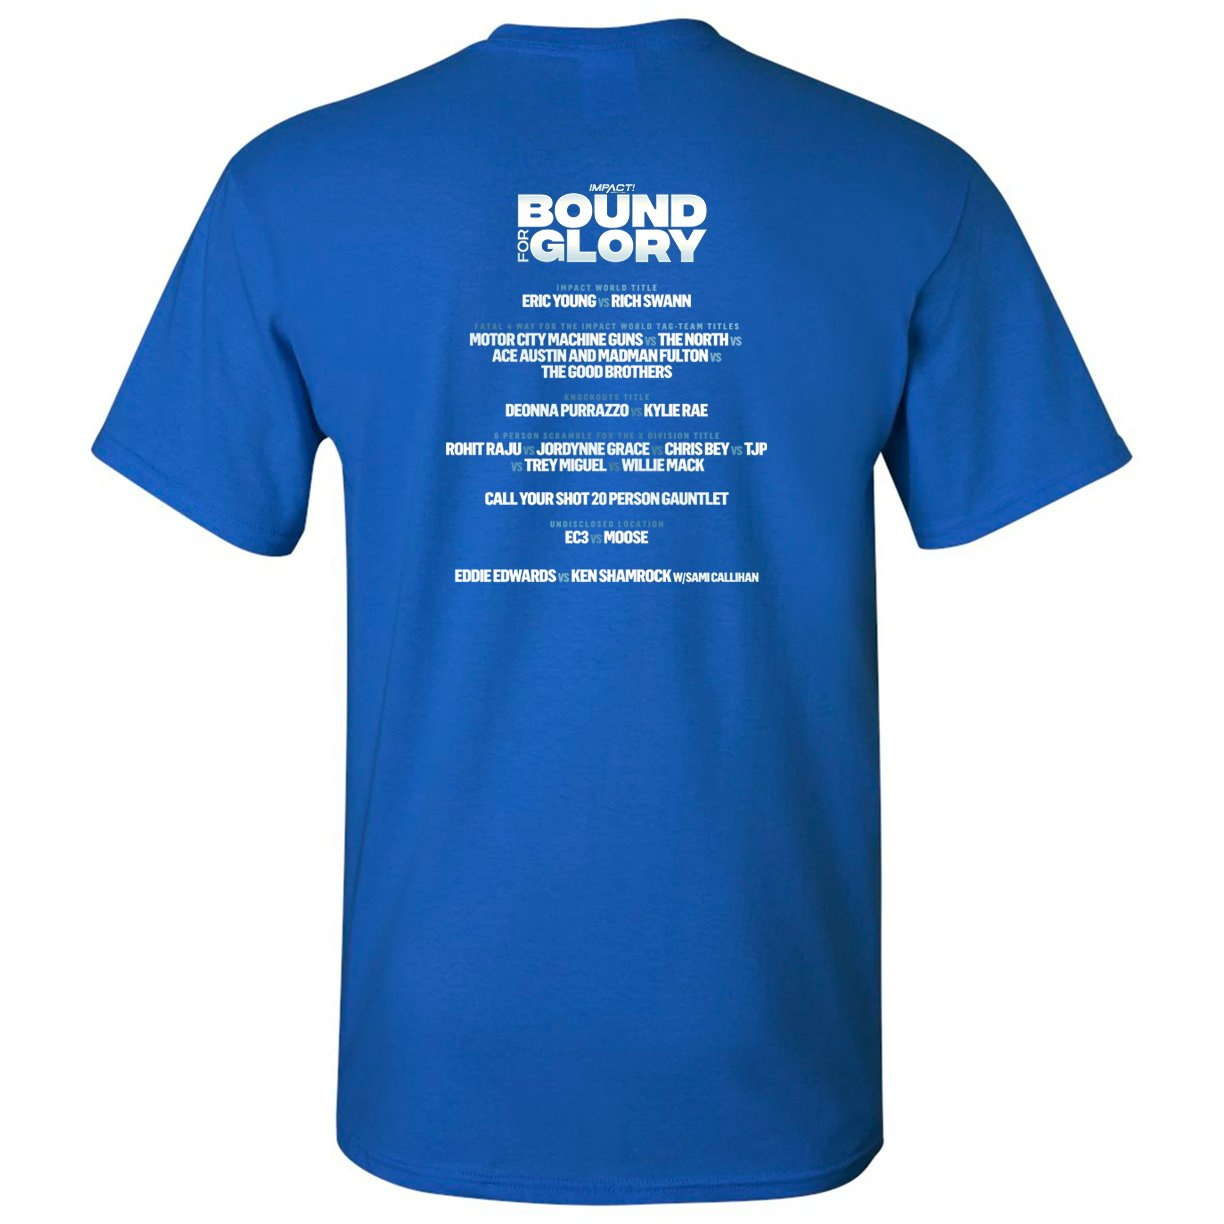 Bound For Glory 2020 Rosemary, Taya Valkyrie & John E Bravo WOMEN'S Short Sleeve Tee